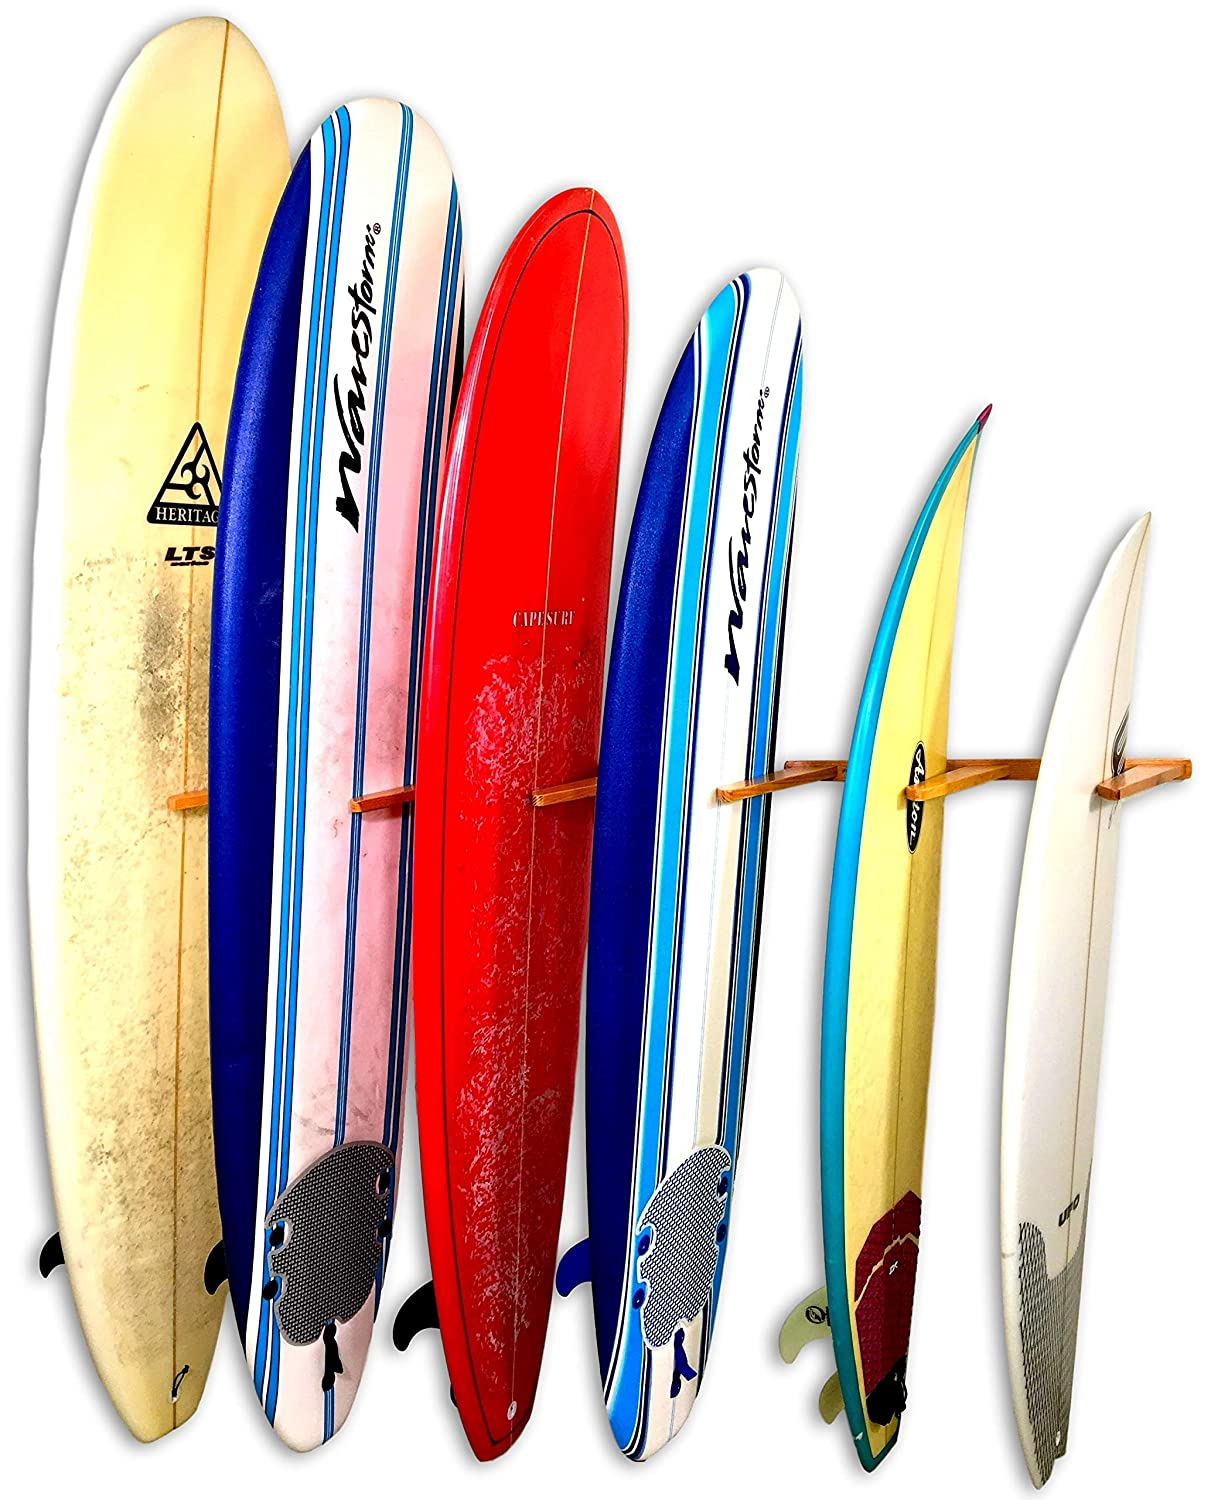 STORE YOUR BOARD Estante de Pared Vertical de Madera para ...